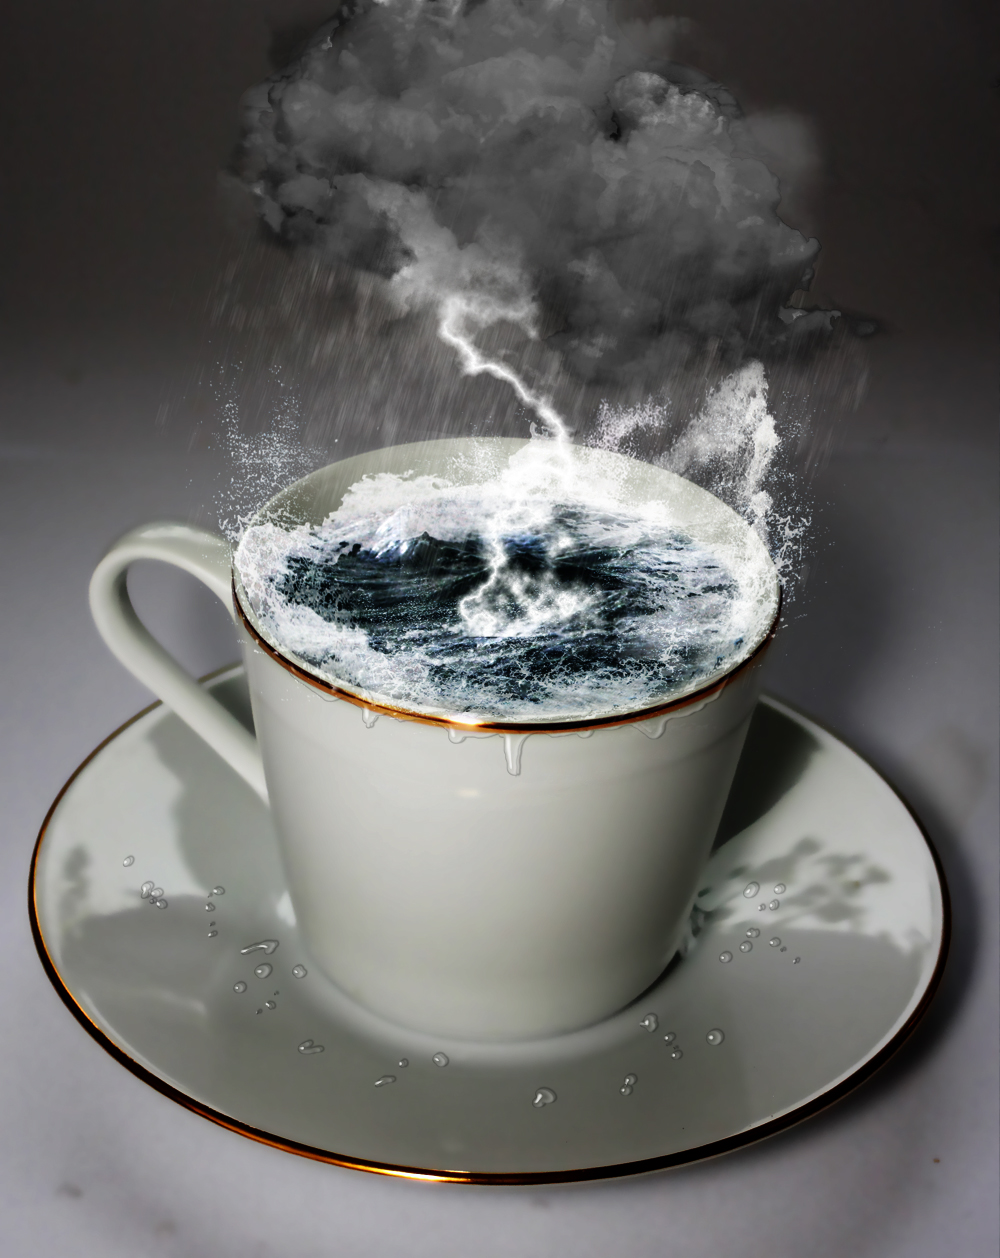 Storm in a Teacup by Kritter5x